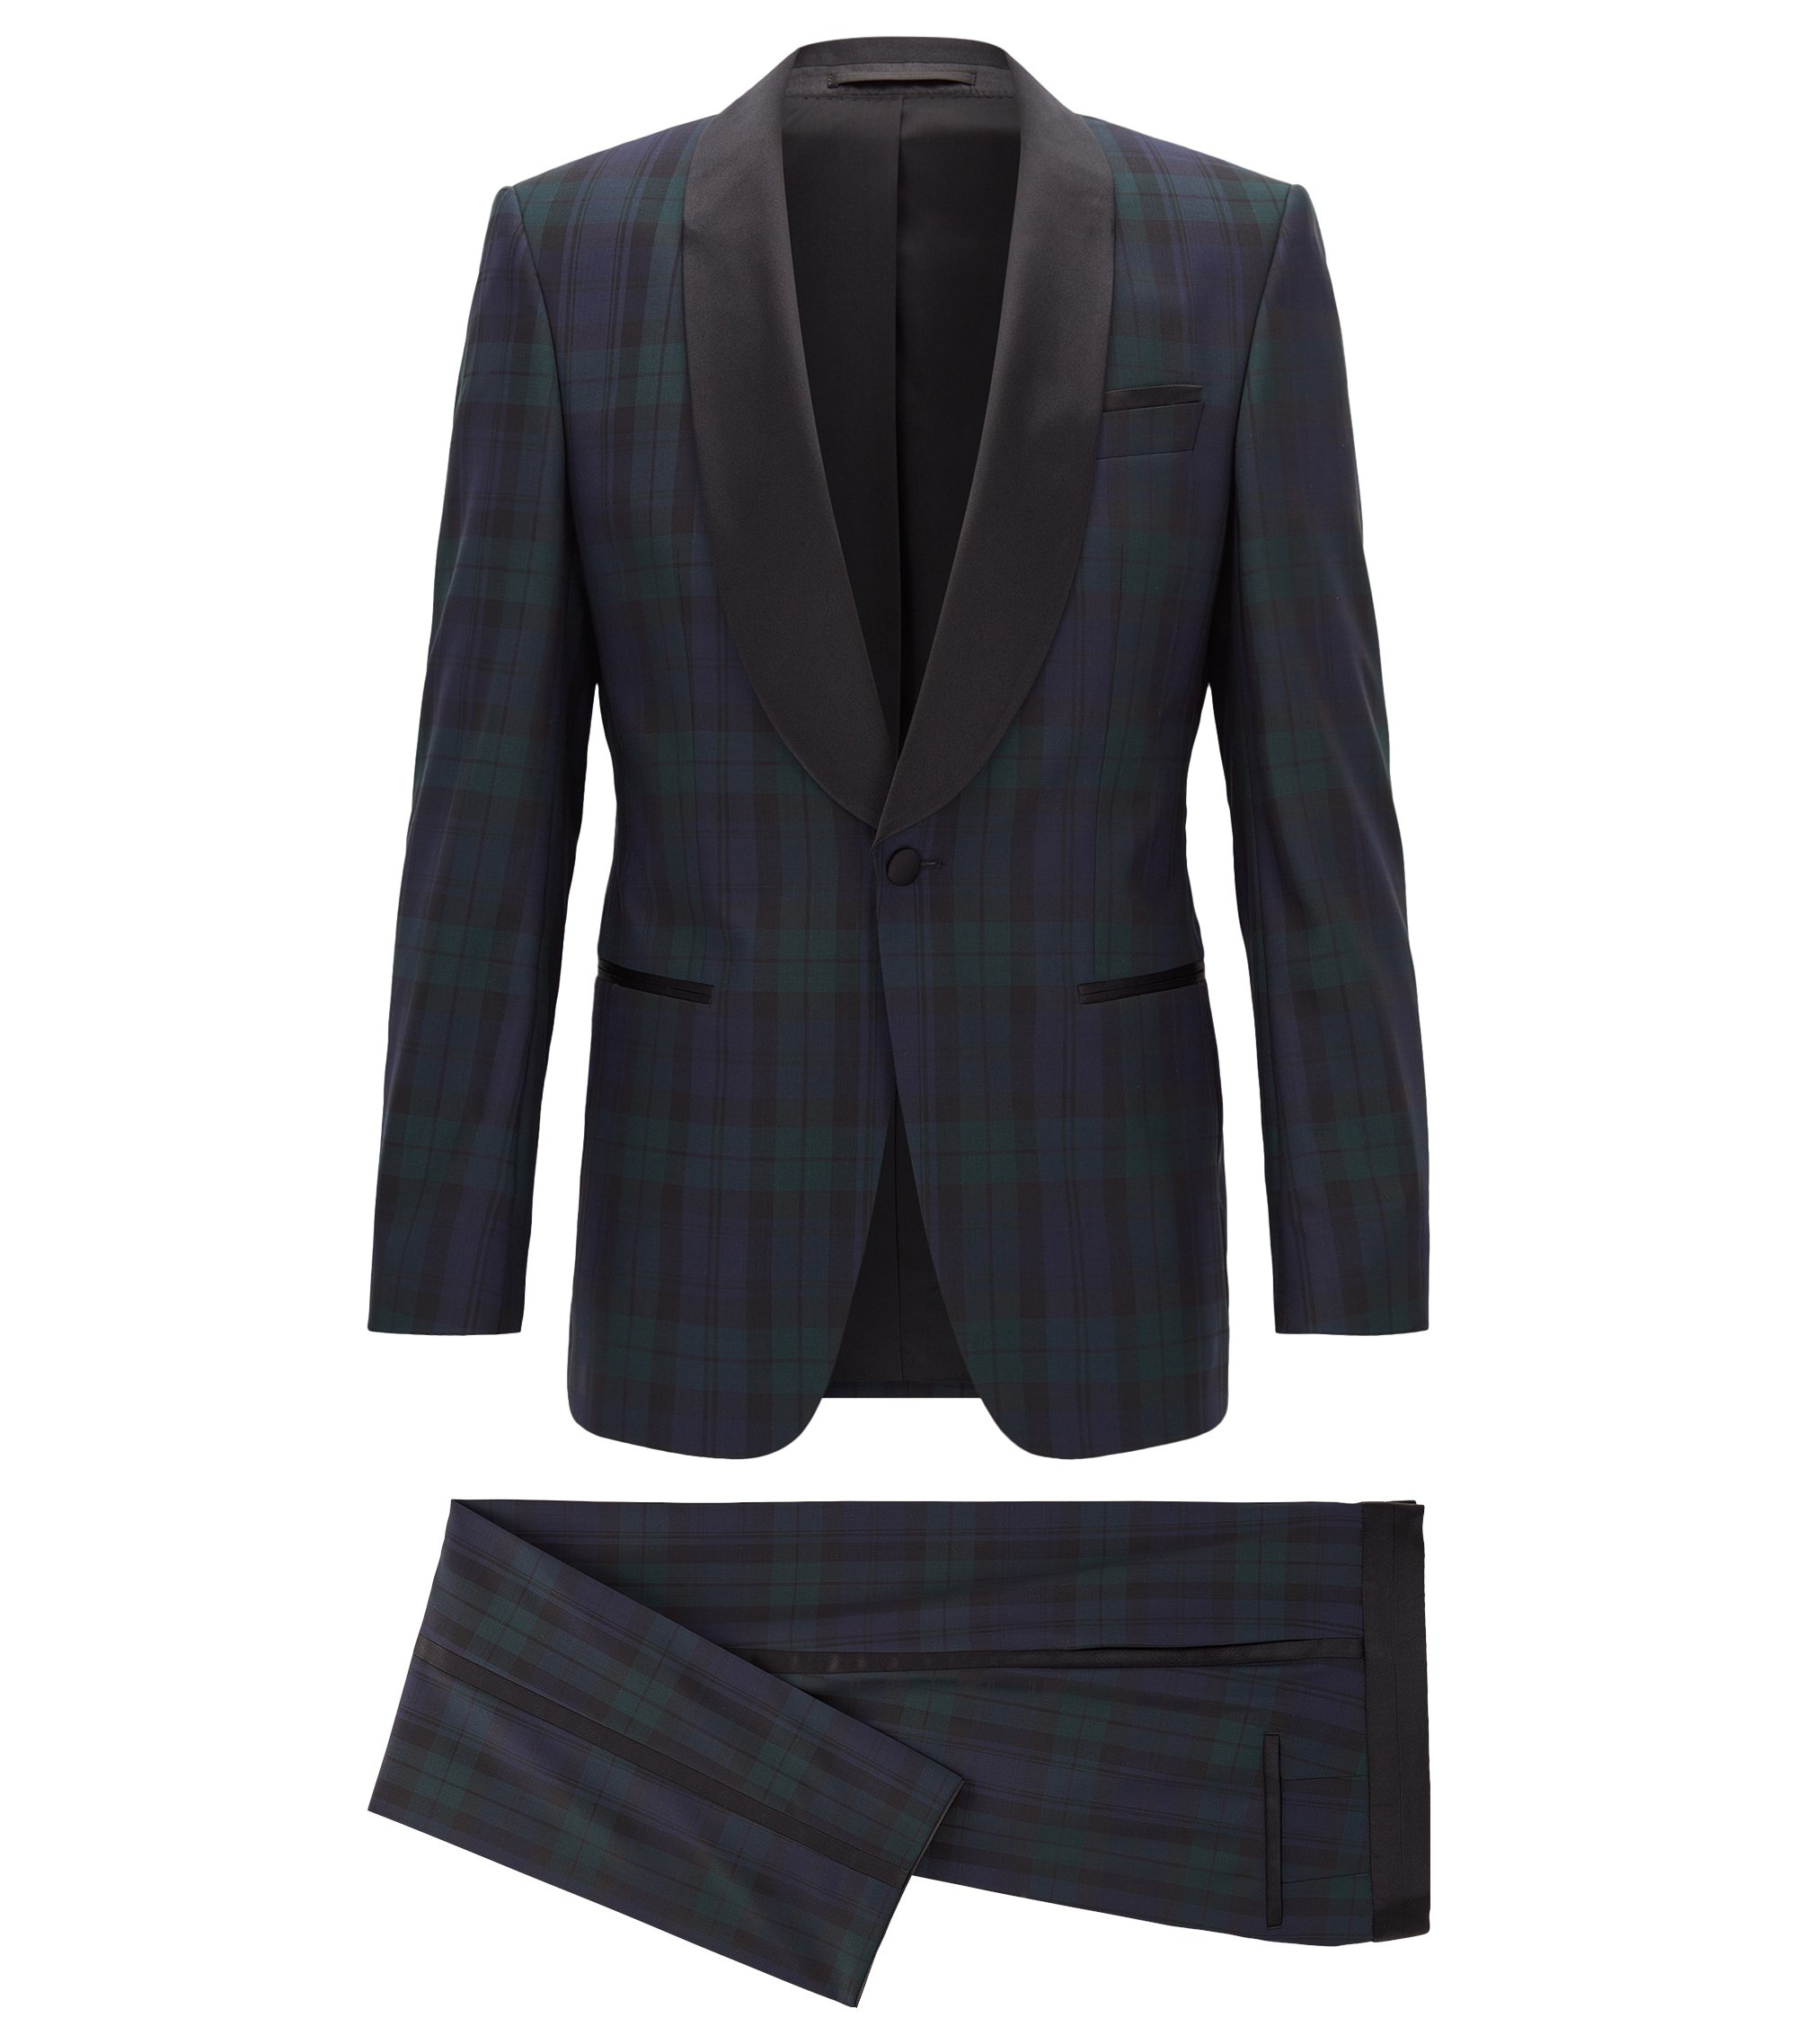 Black Watch Virgin Wool Tuxedo, Slim Fit | Herwyn/Gewon | Herwyn/Gewon, Dark Blue